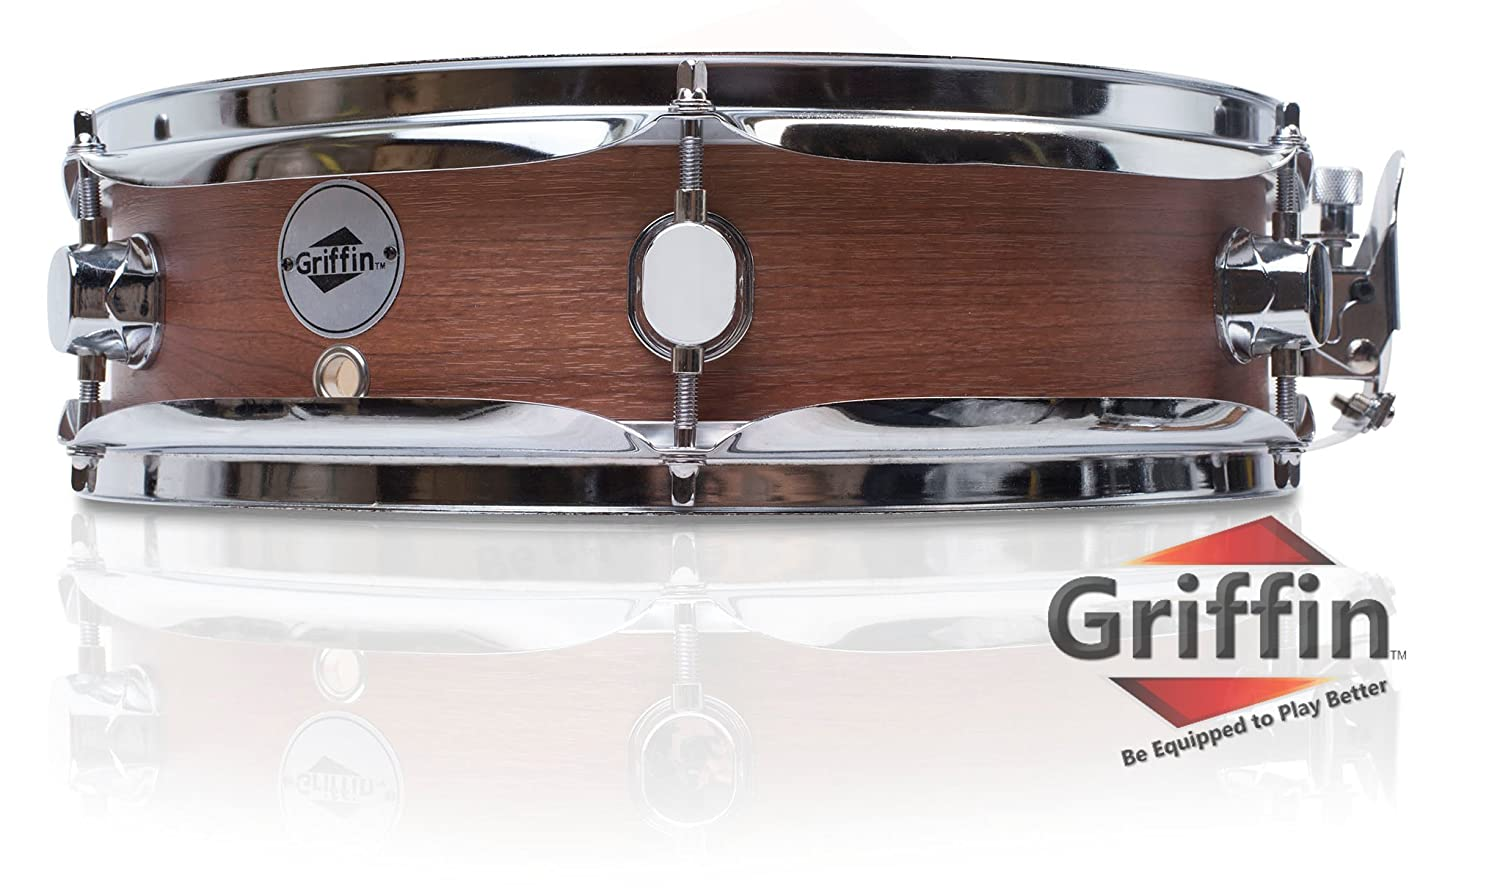 Piccolo Snare Drum 13 x 3.5 by Griffin|100/% Poplar Wood Shell with Flat Hickory Finish and Coated Drum Head Professional Drummers Deluxe Percussion Instrument with Bright Tone and Brilliant Attack